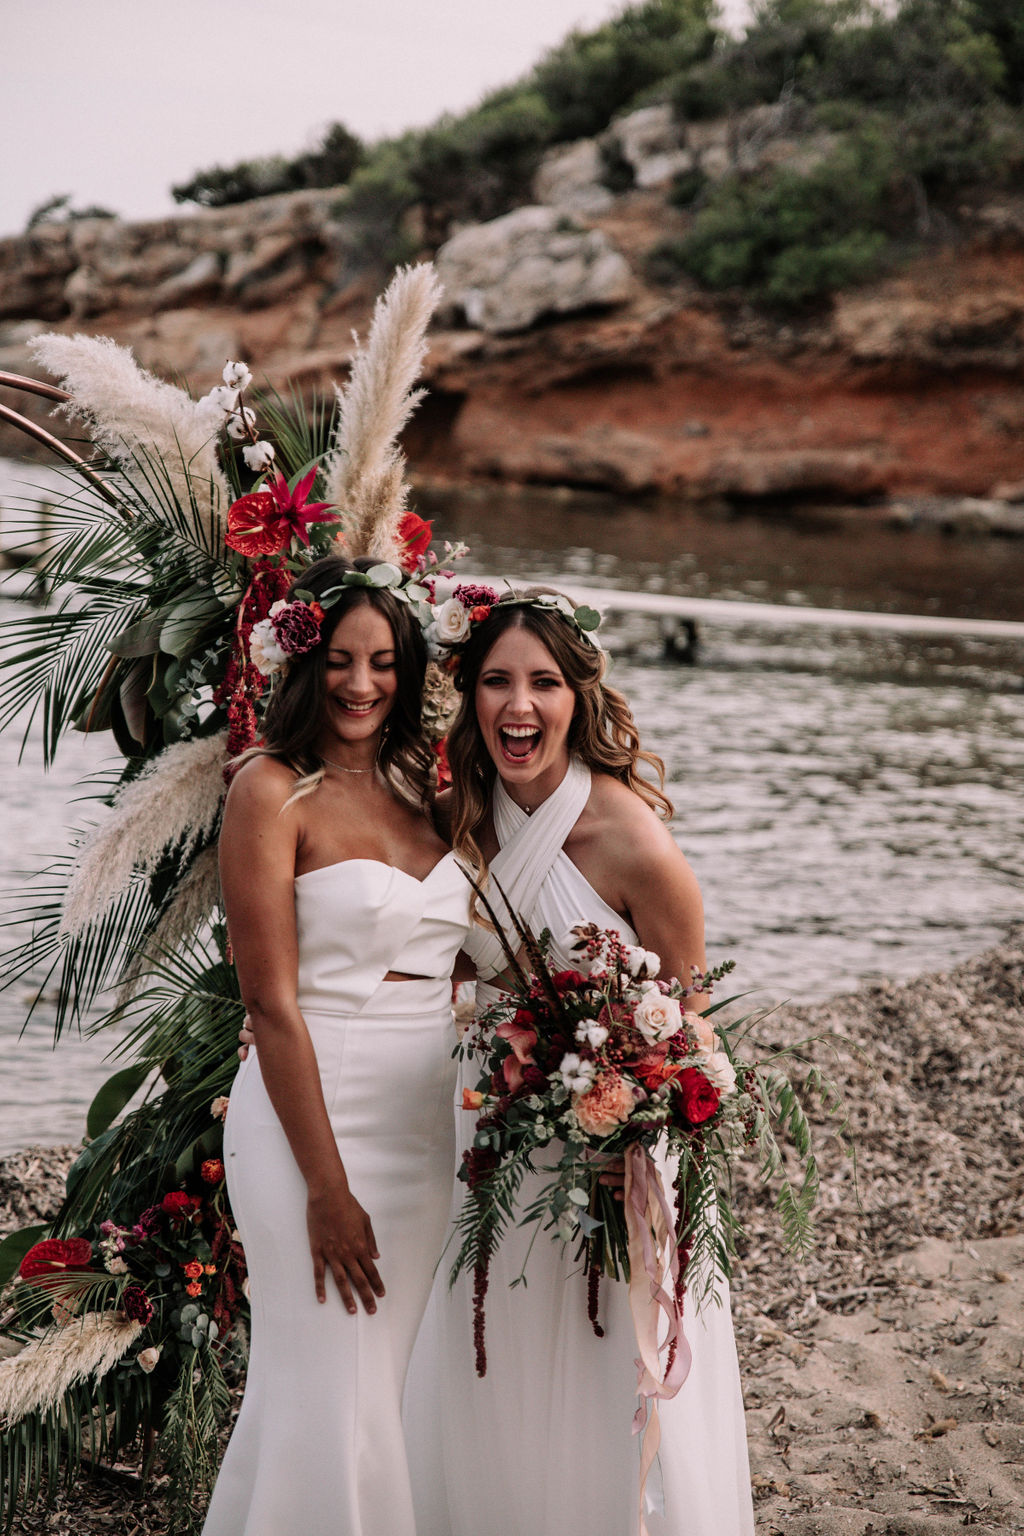 Two brides - love is love shoot - cathedral veil with lace - iniza destination wedding inspiration (85)Two brides - love is love shoot - cathedral veil with lace - iniza destination wedding inspiration (85)